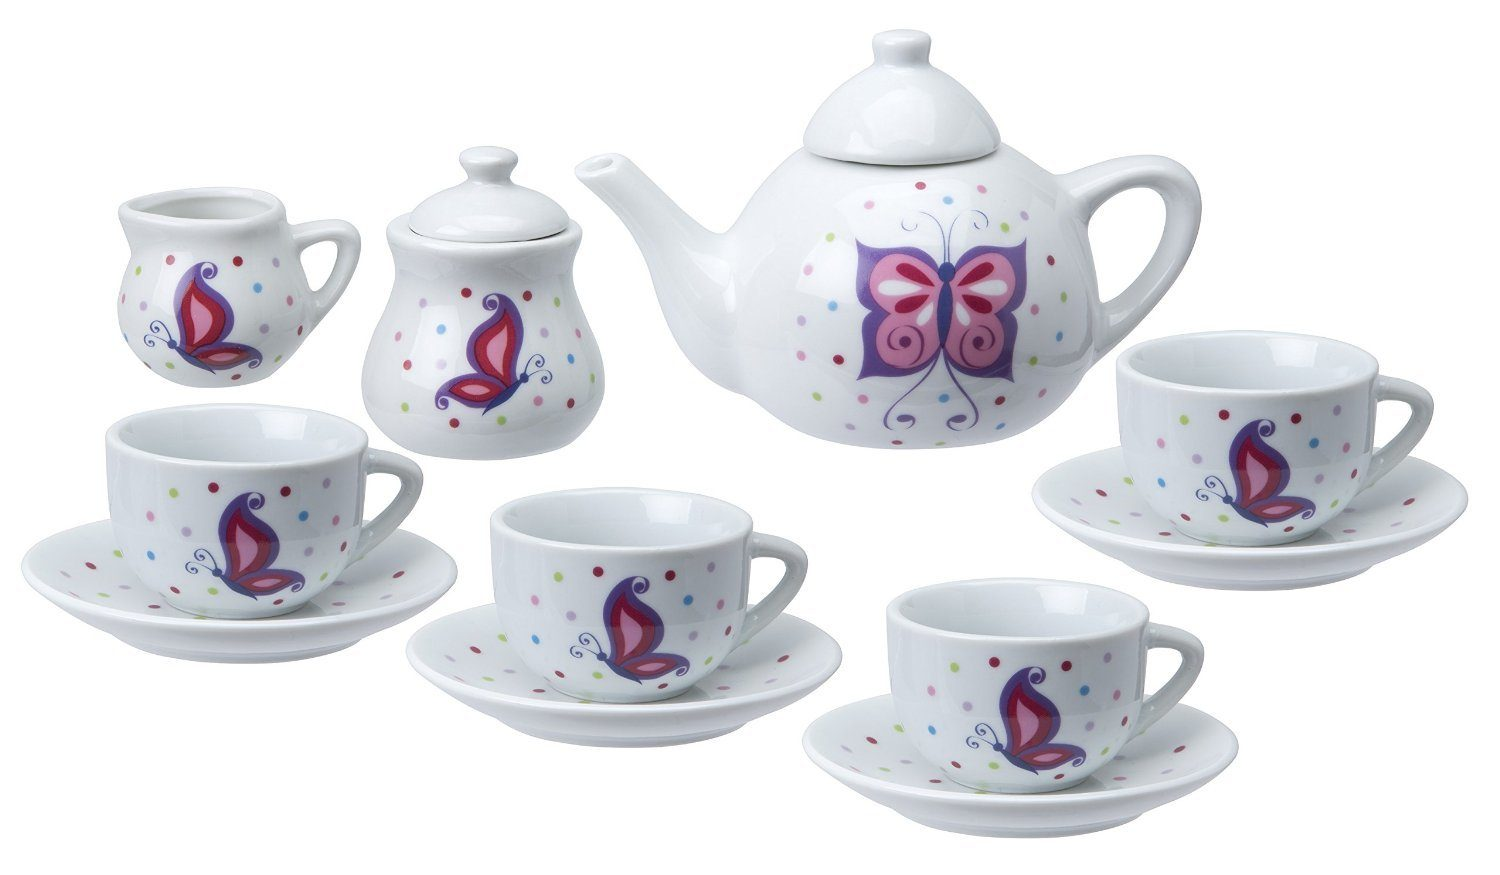 ALEX Toys Chasing Butterflies Ceramic Tea Set Only $12.82 (Reg. $24.99)!